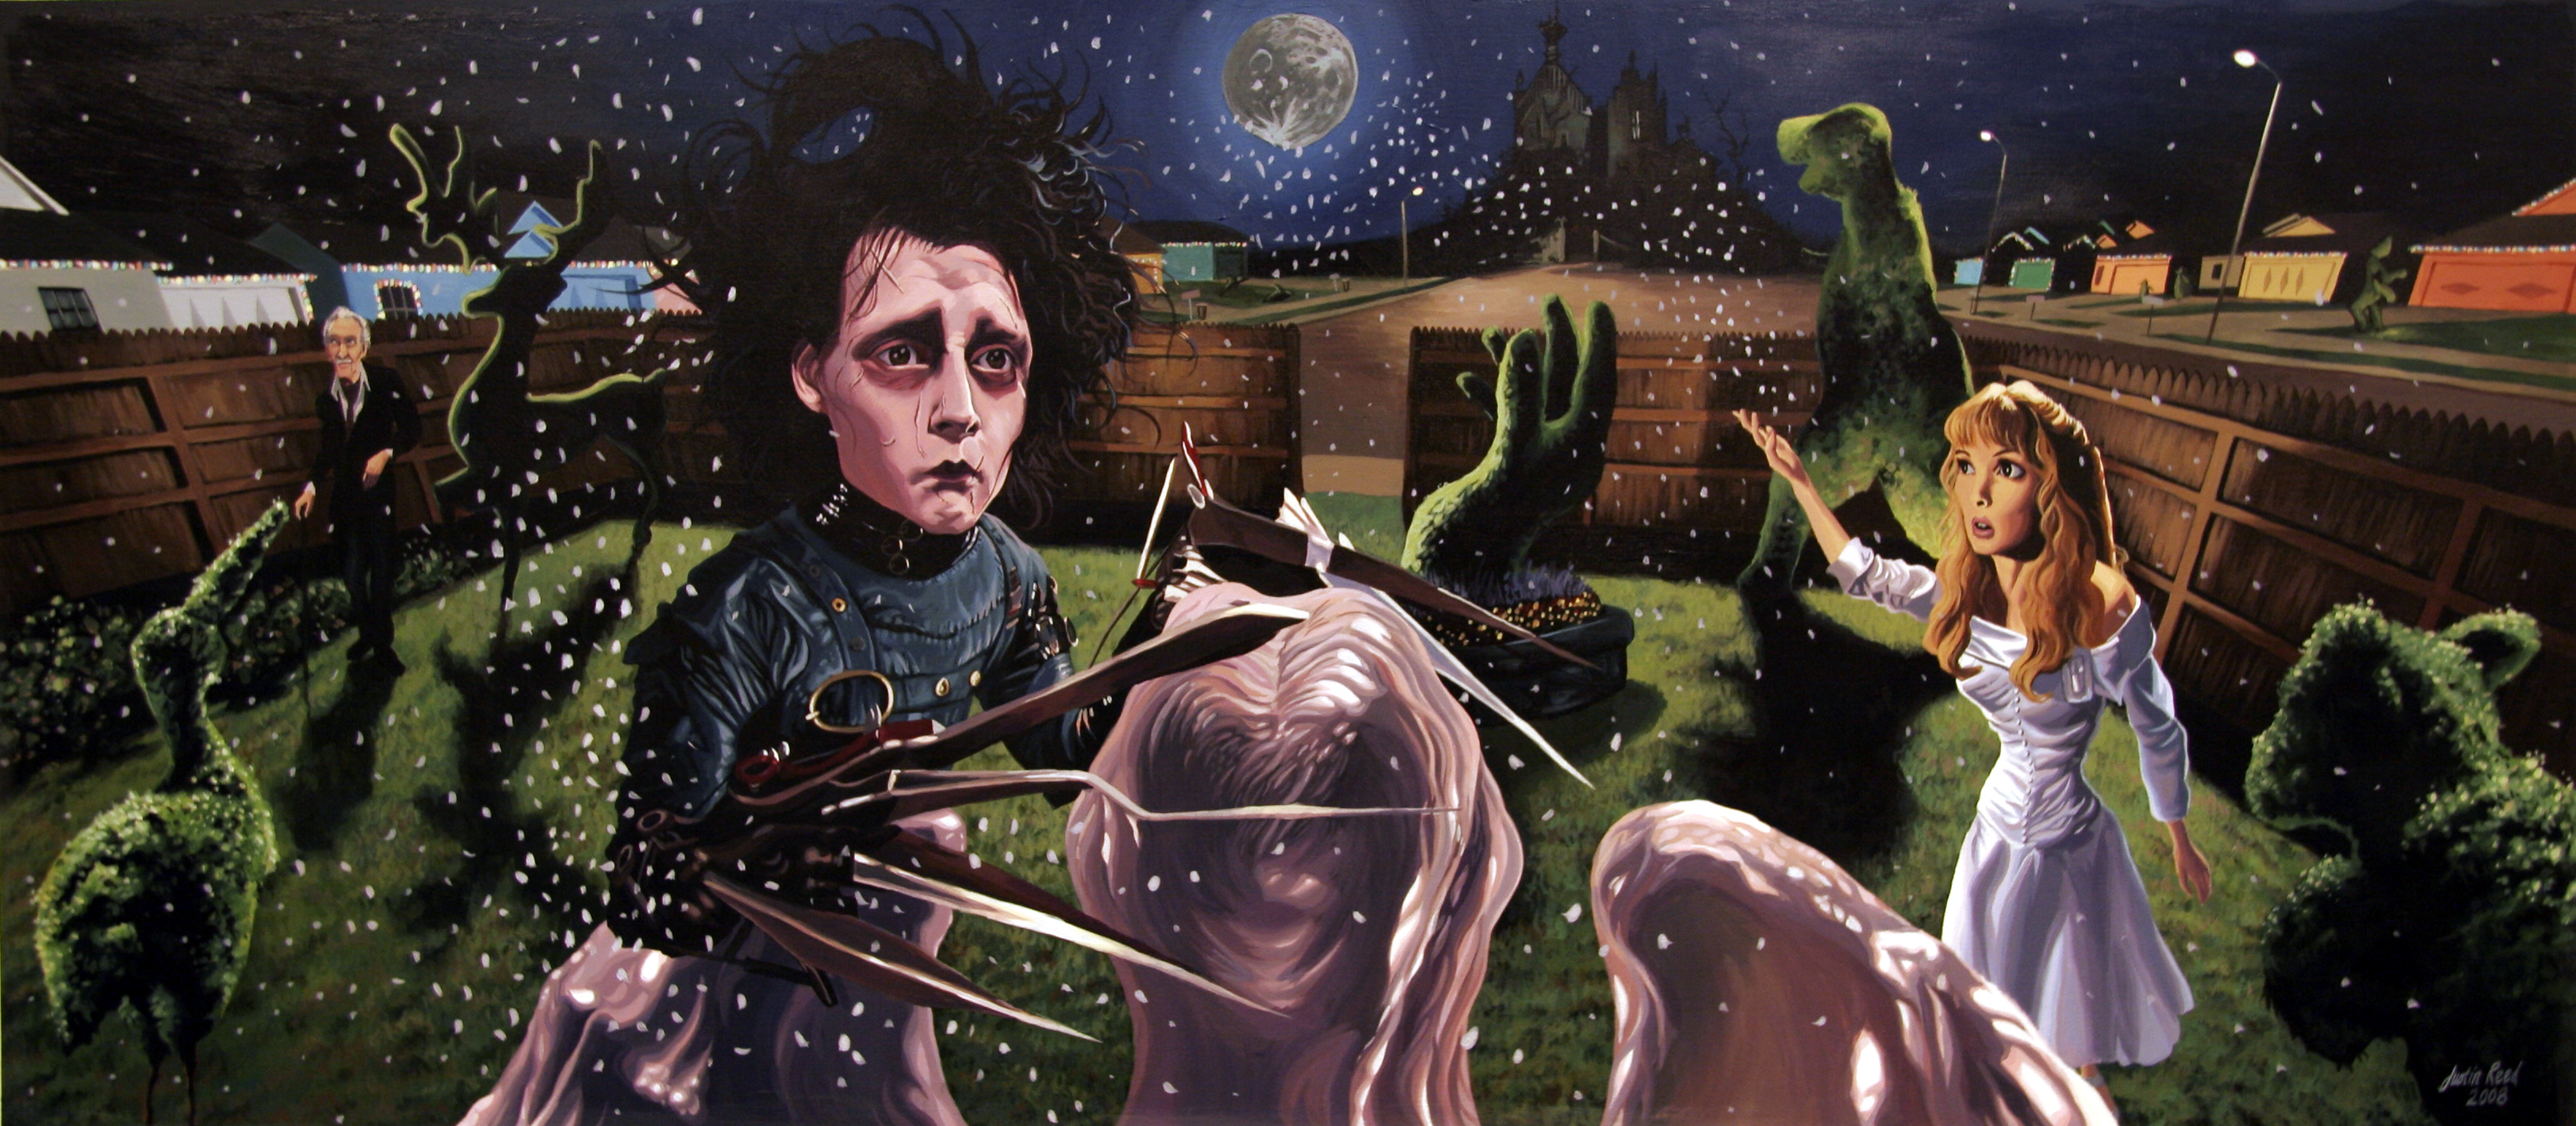 edward scissorhands tim burton techniques does burton use Free sample films essay on tim burton cinematic techniques in edward scissorhands tim burton is able to use cinematic techniques an important part of his.